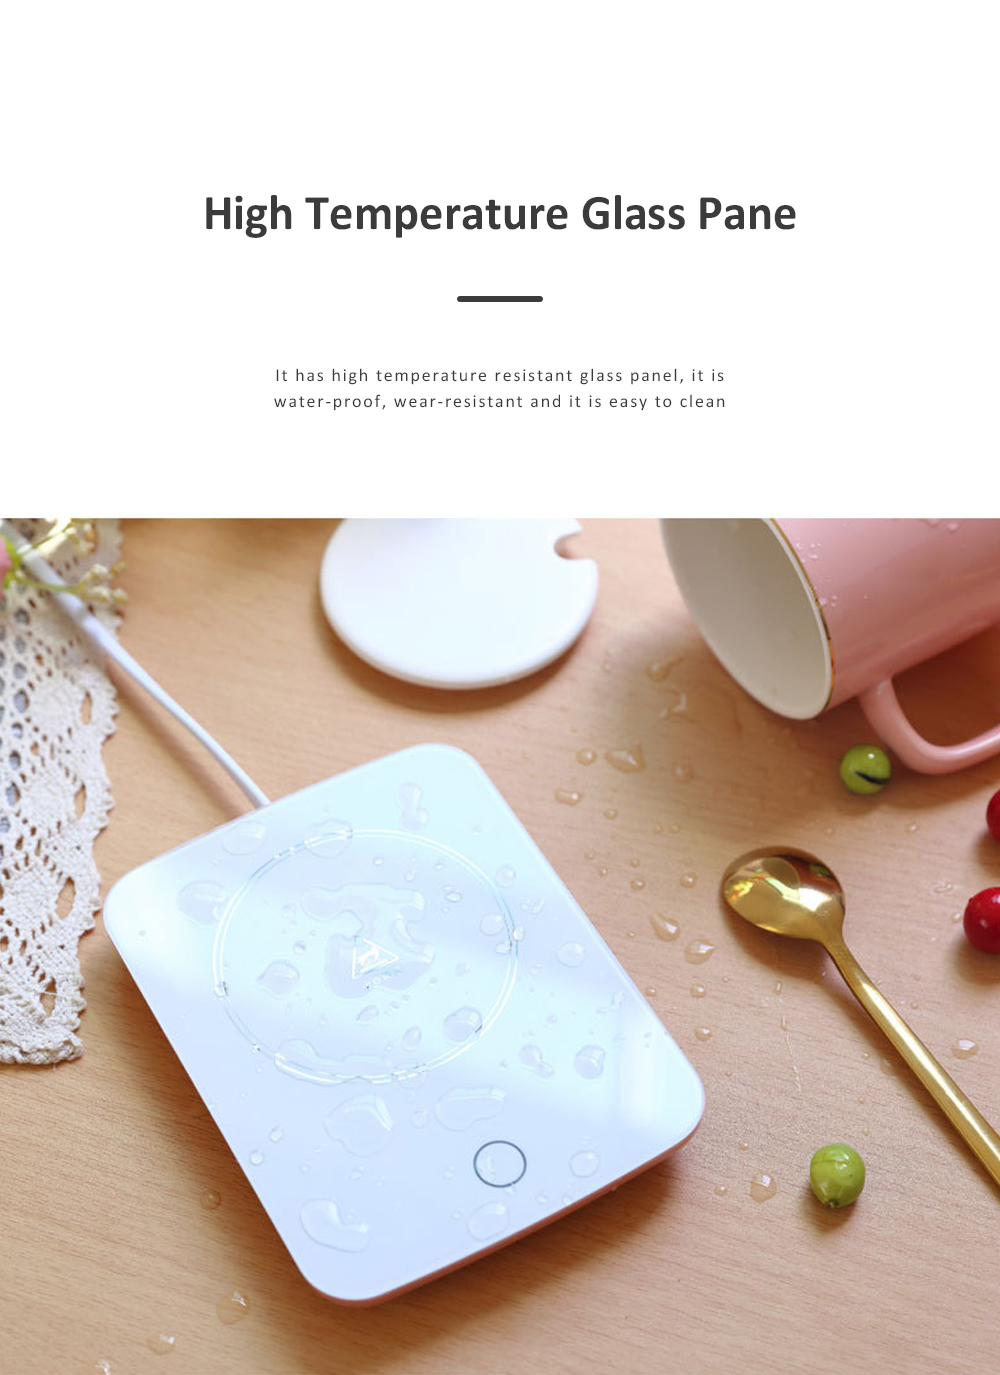 55 Degree Intelligent Thermostat Coaster Smart Insulation Office Heating Mat Warmer Milk Warmer Cup Gift With Delicate Box Valentine Gift 6